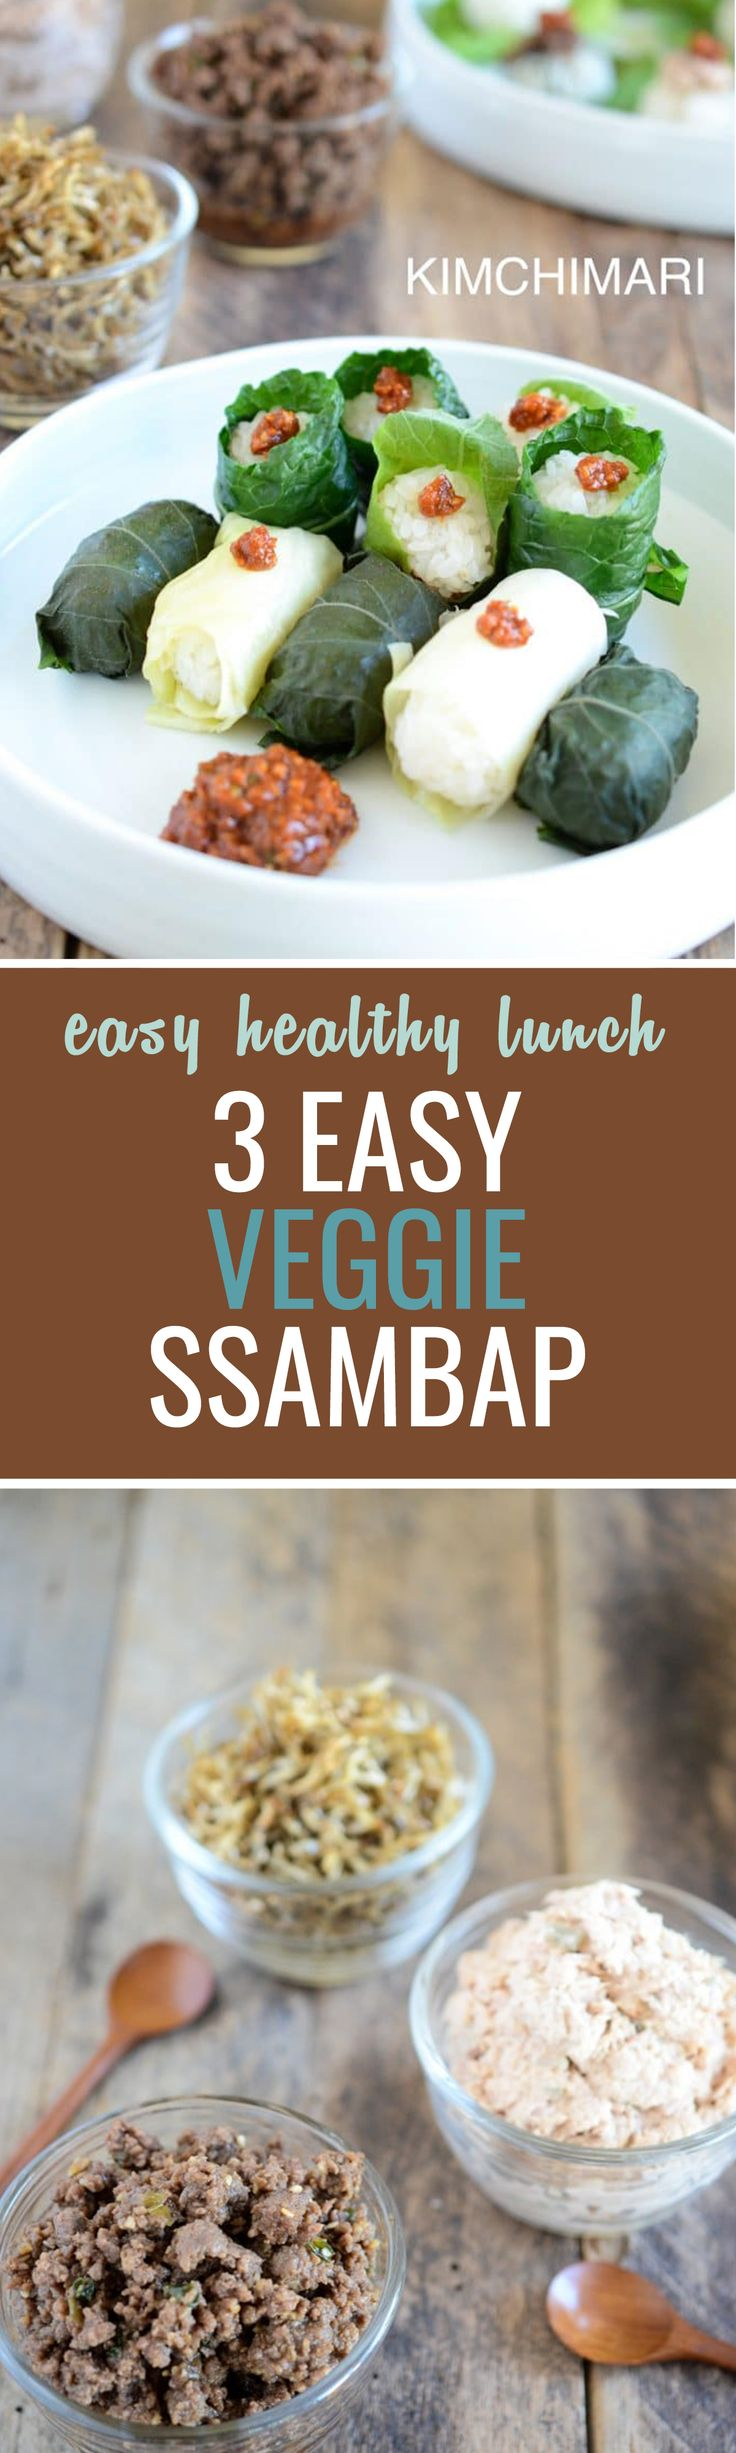 Gluten free, easy veggie wrap rice ssambap is a fun way to have a nutritious meal :)